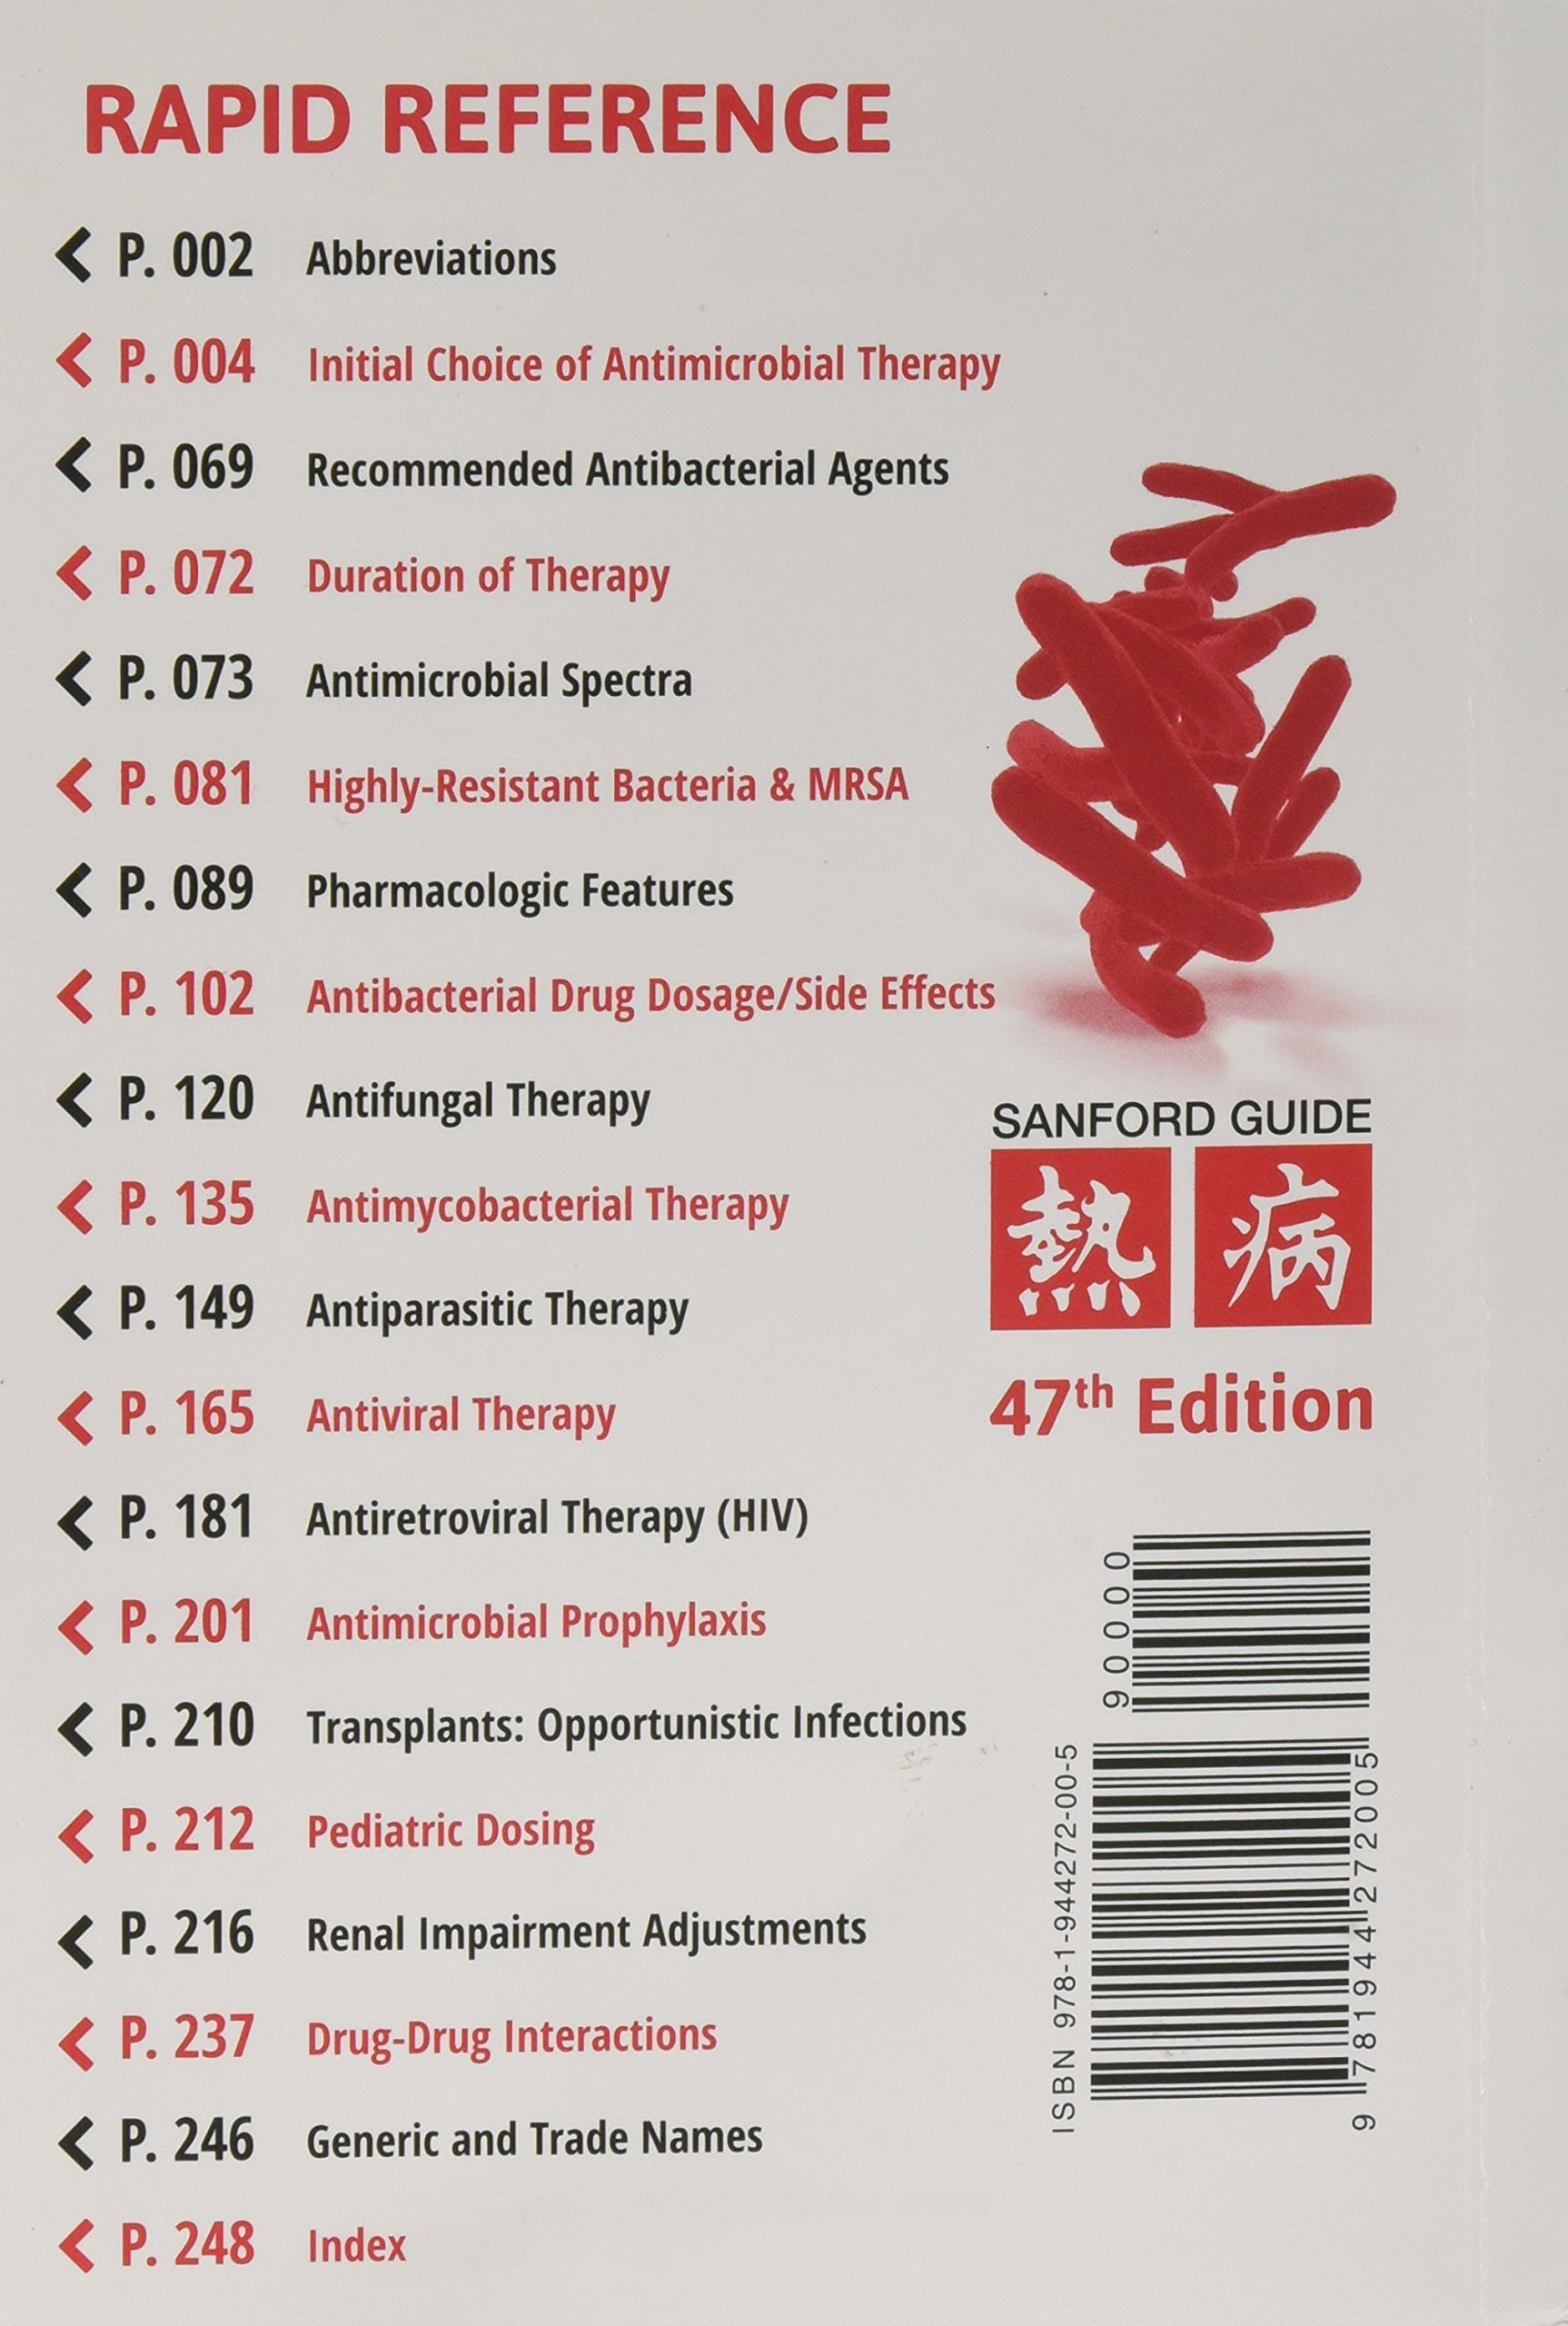 The Sanford Guide to Antimicrobial Therapy 2017: Amazon.de: David N ...